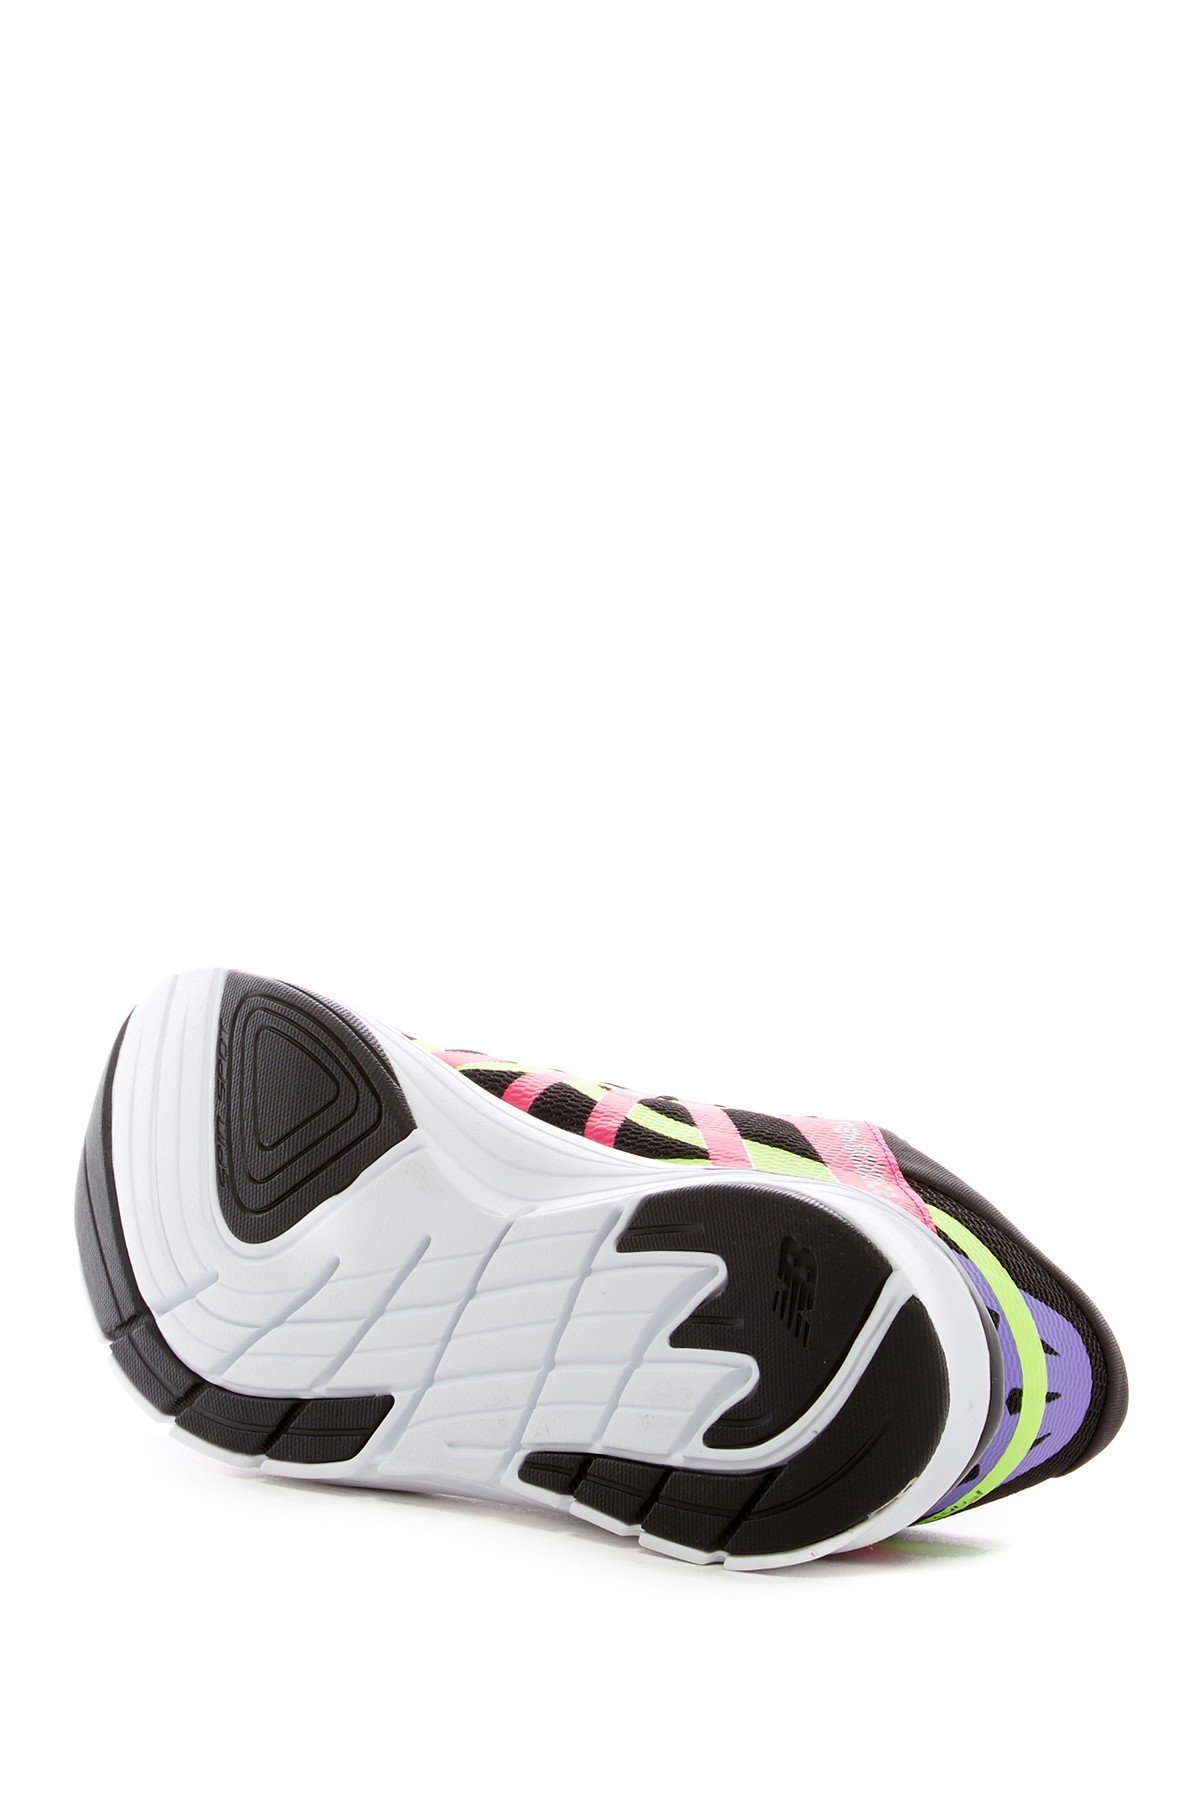 大人気!811 Training Sneaker - Multiple Widths Av スニーカー